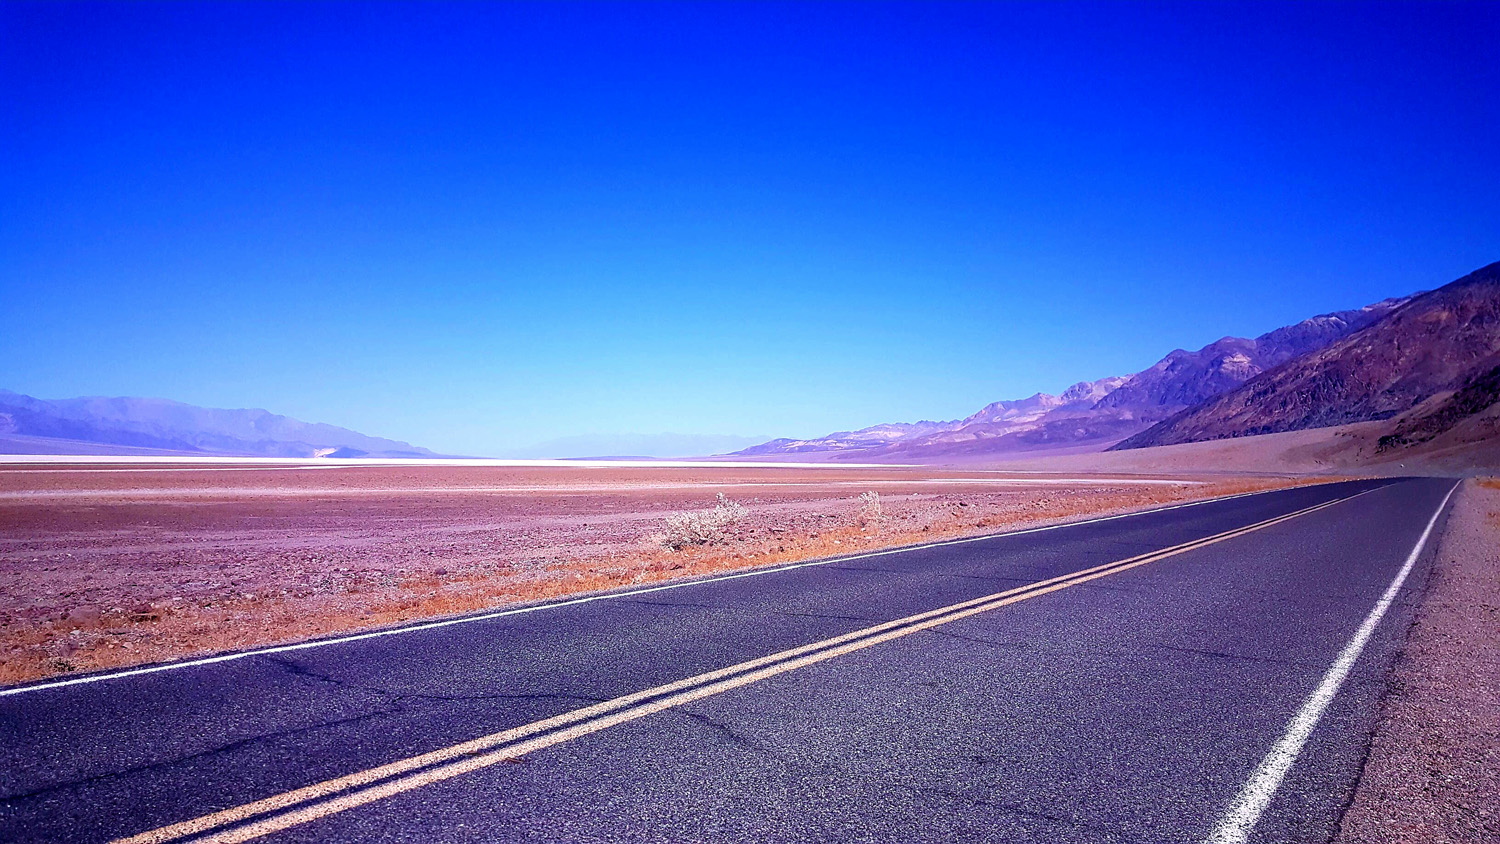 Crossroads Death Valley Nevada USA - What's Your Challenge